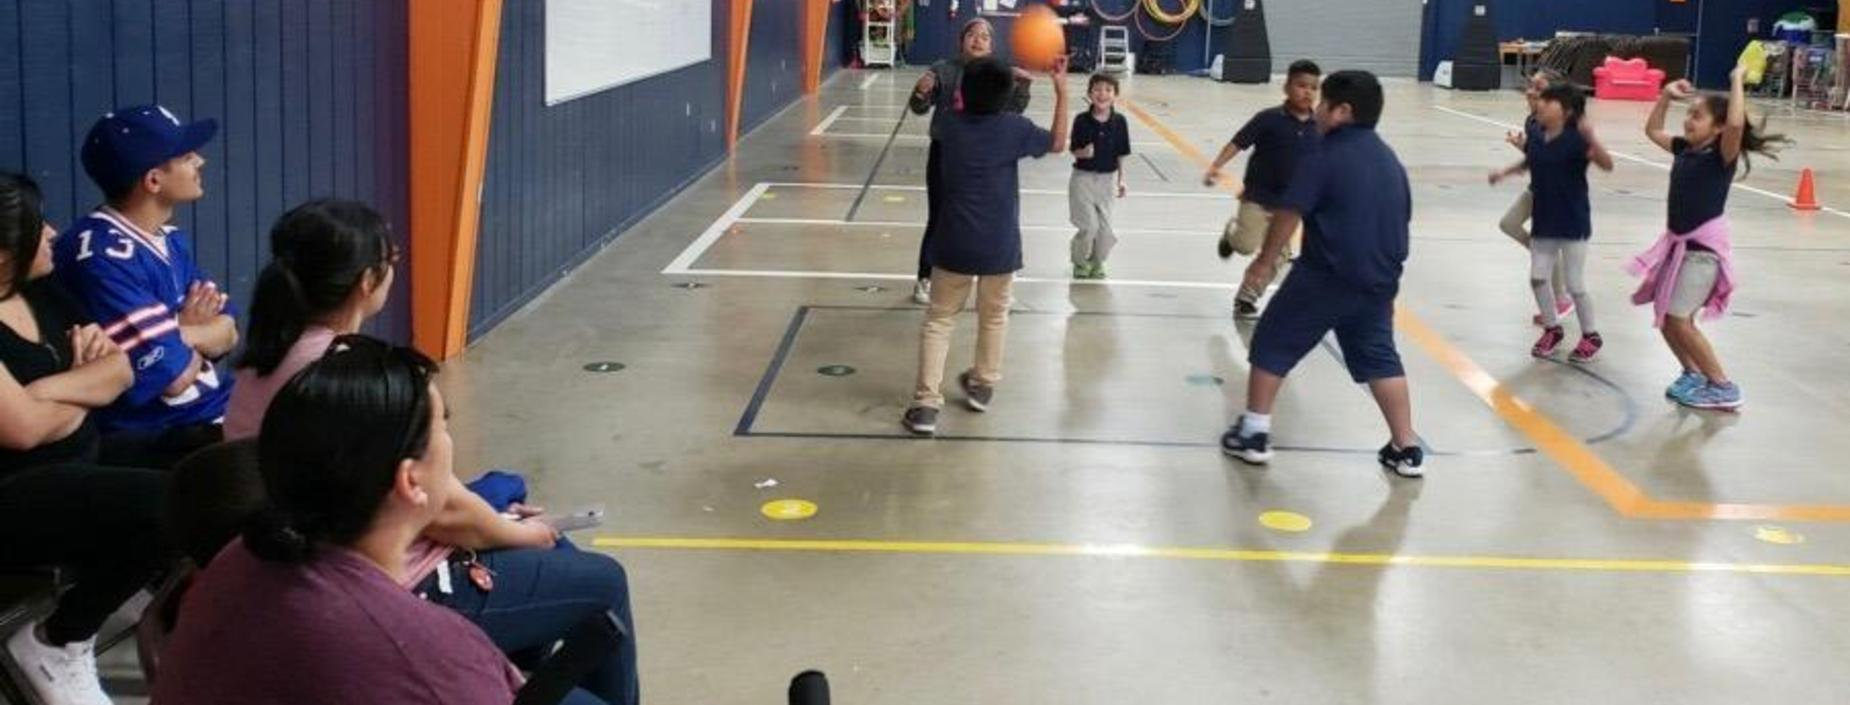 Image of parents watching students playing basketball.